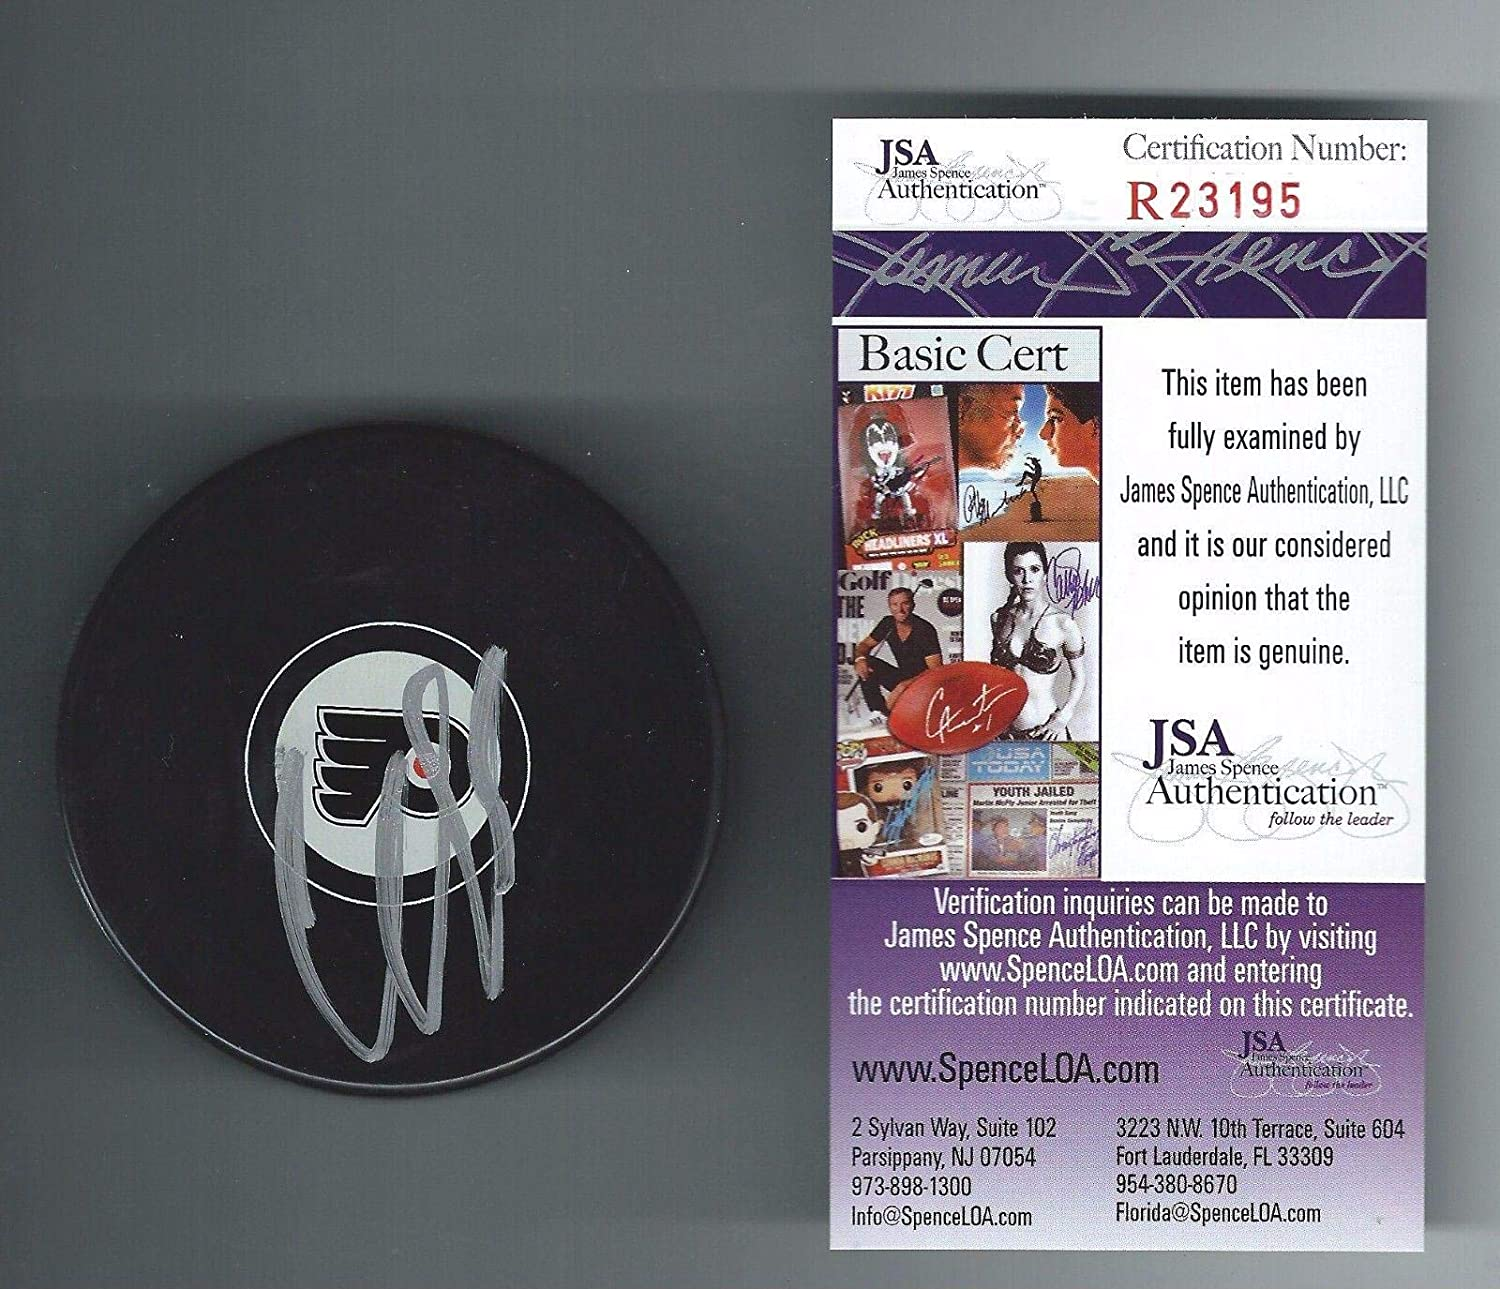 Claude Giroux Autographed Puck - Authenticated - JSA Certified - Autographed NHL Pucks